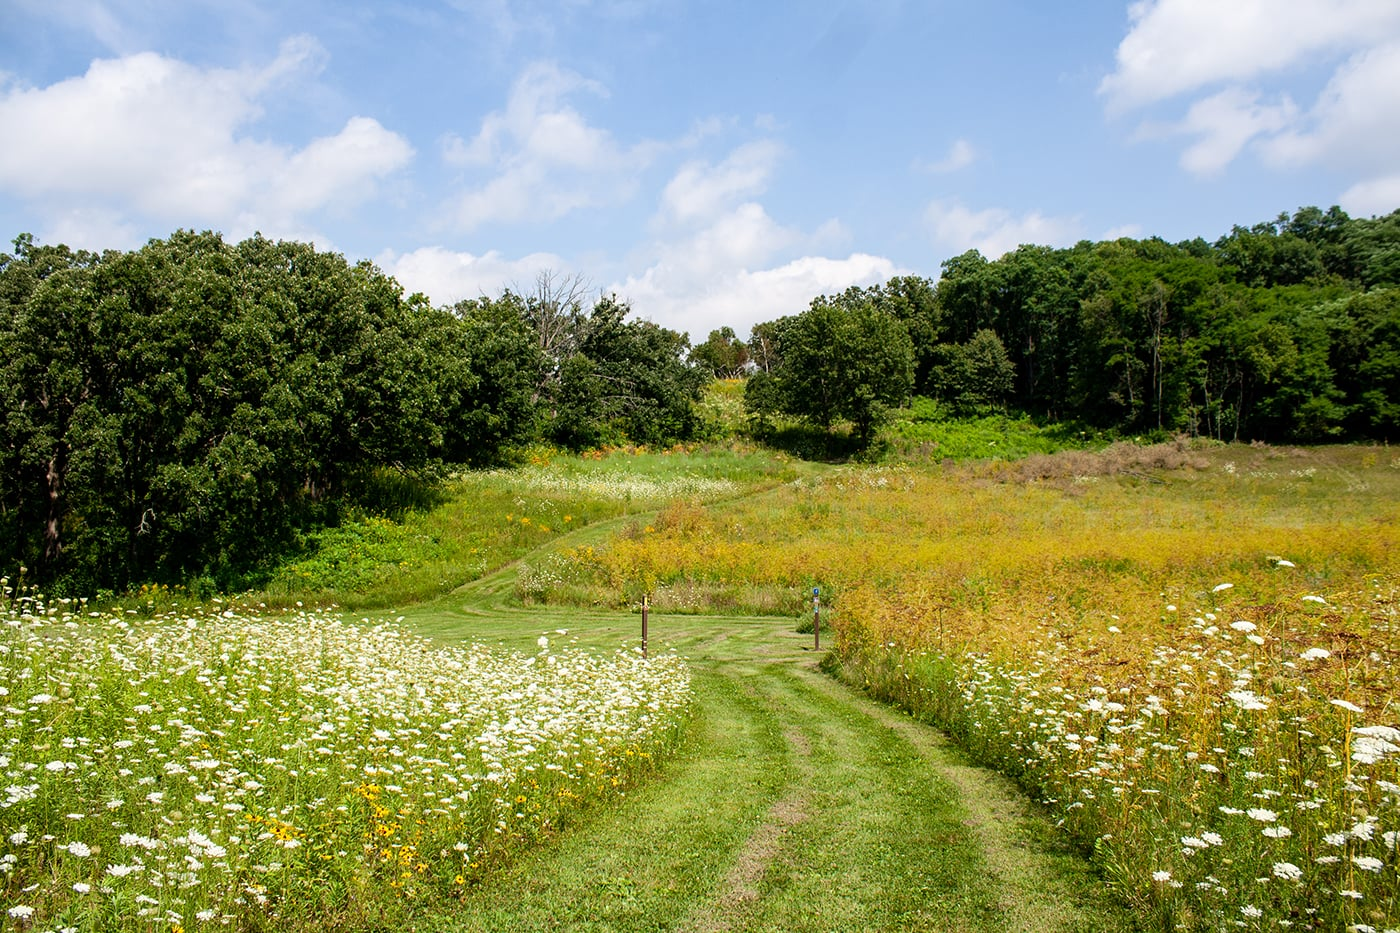 Flat grass trail with meadows on each side and trees in the background.